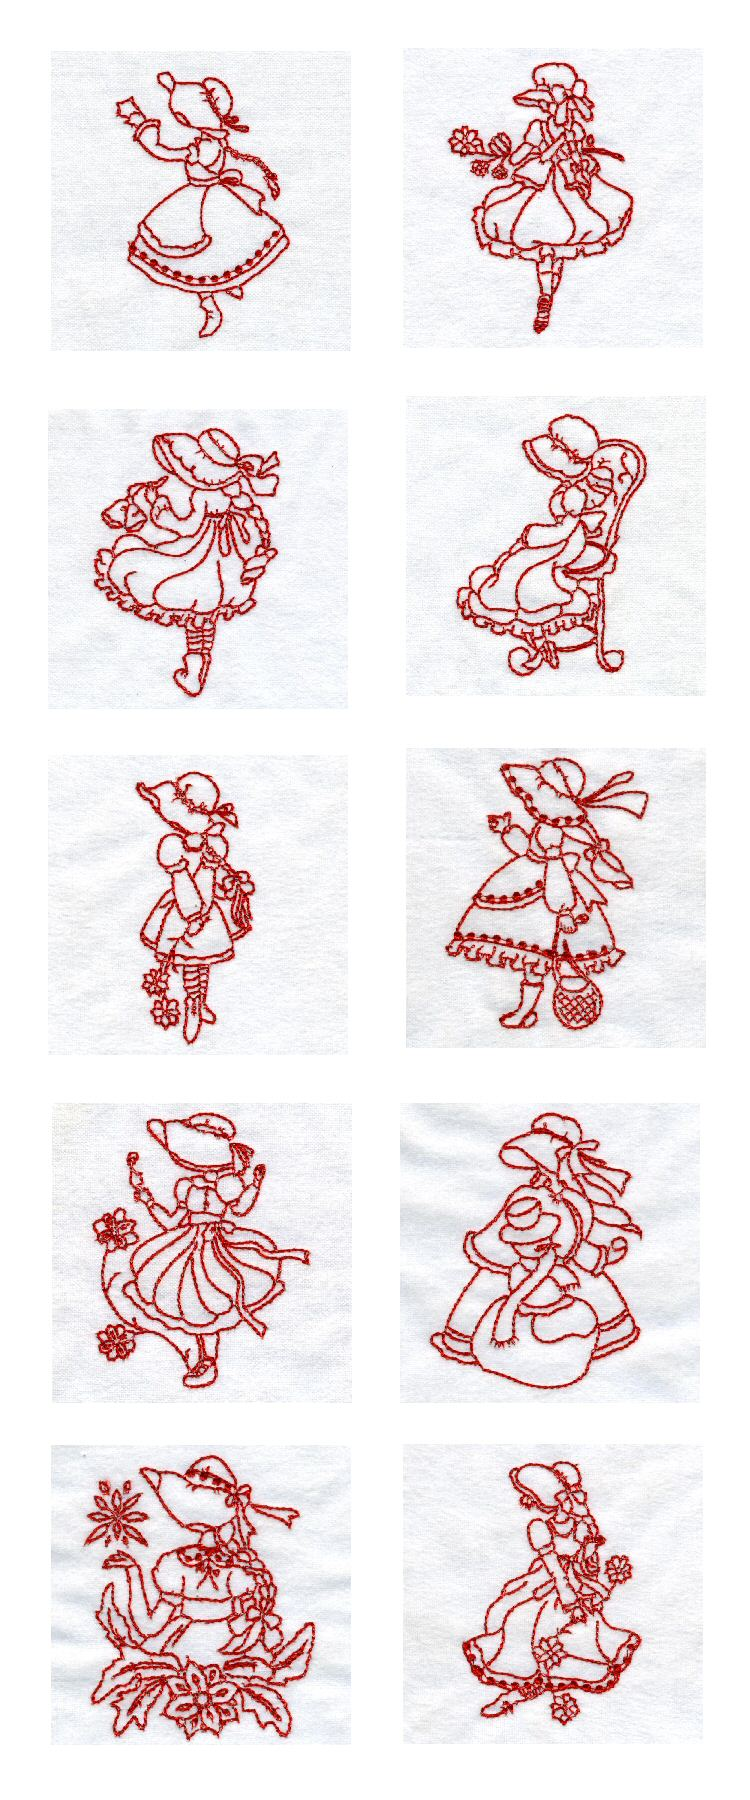 Embroidery machine designs line art lovely sunbonnets set